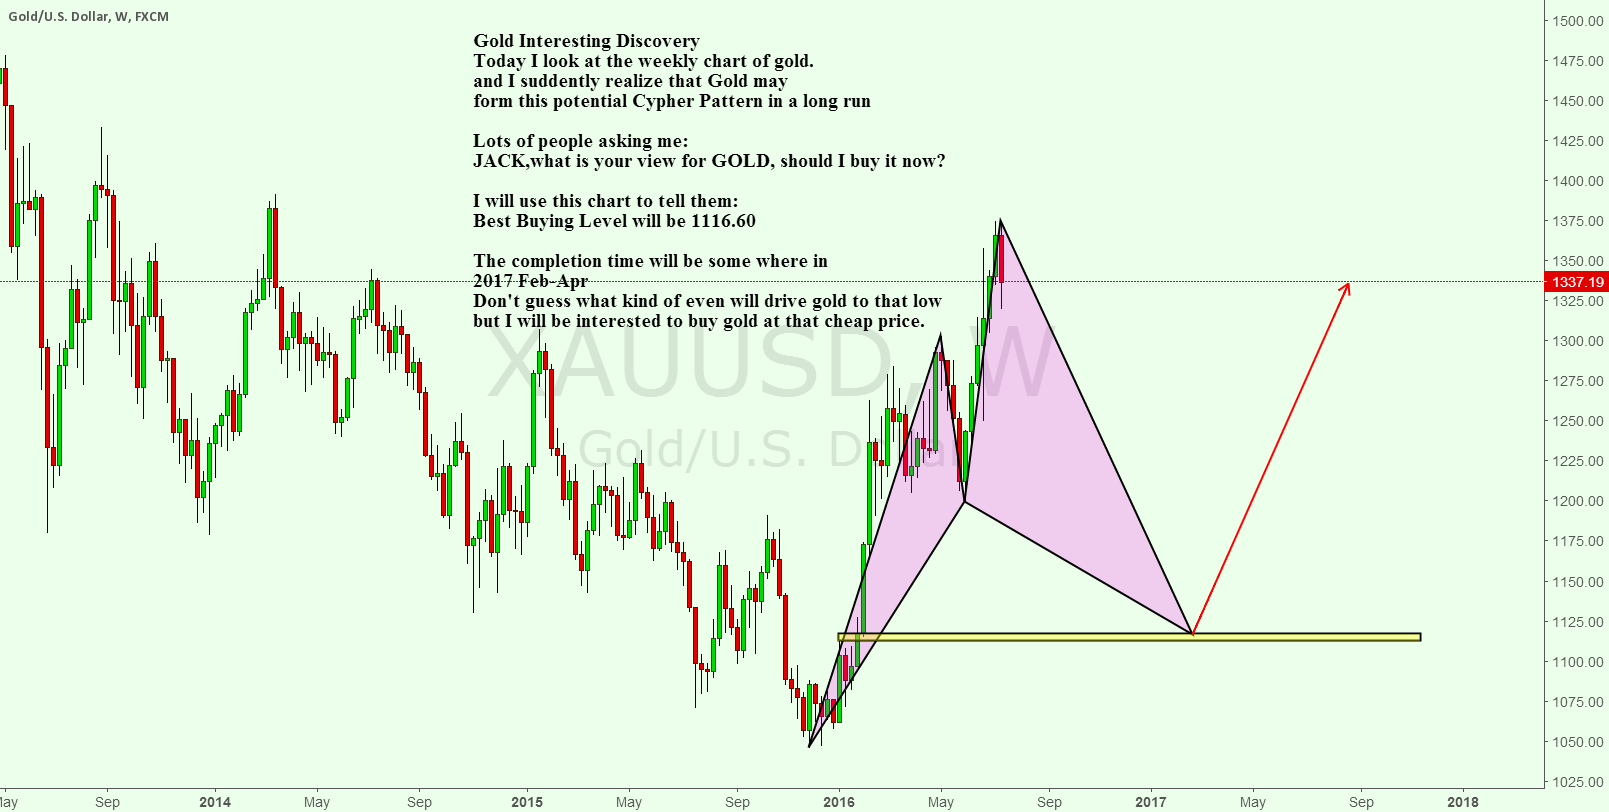 Gold Weekly Cypher Pattern tells us when should we buy gold